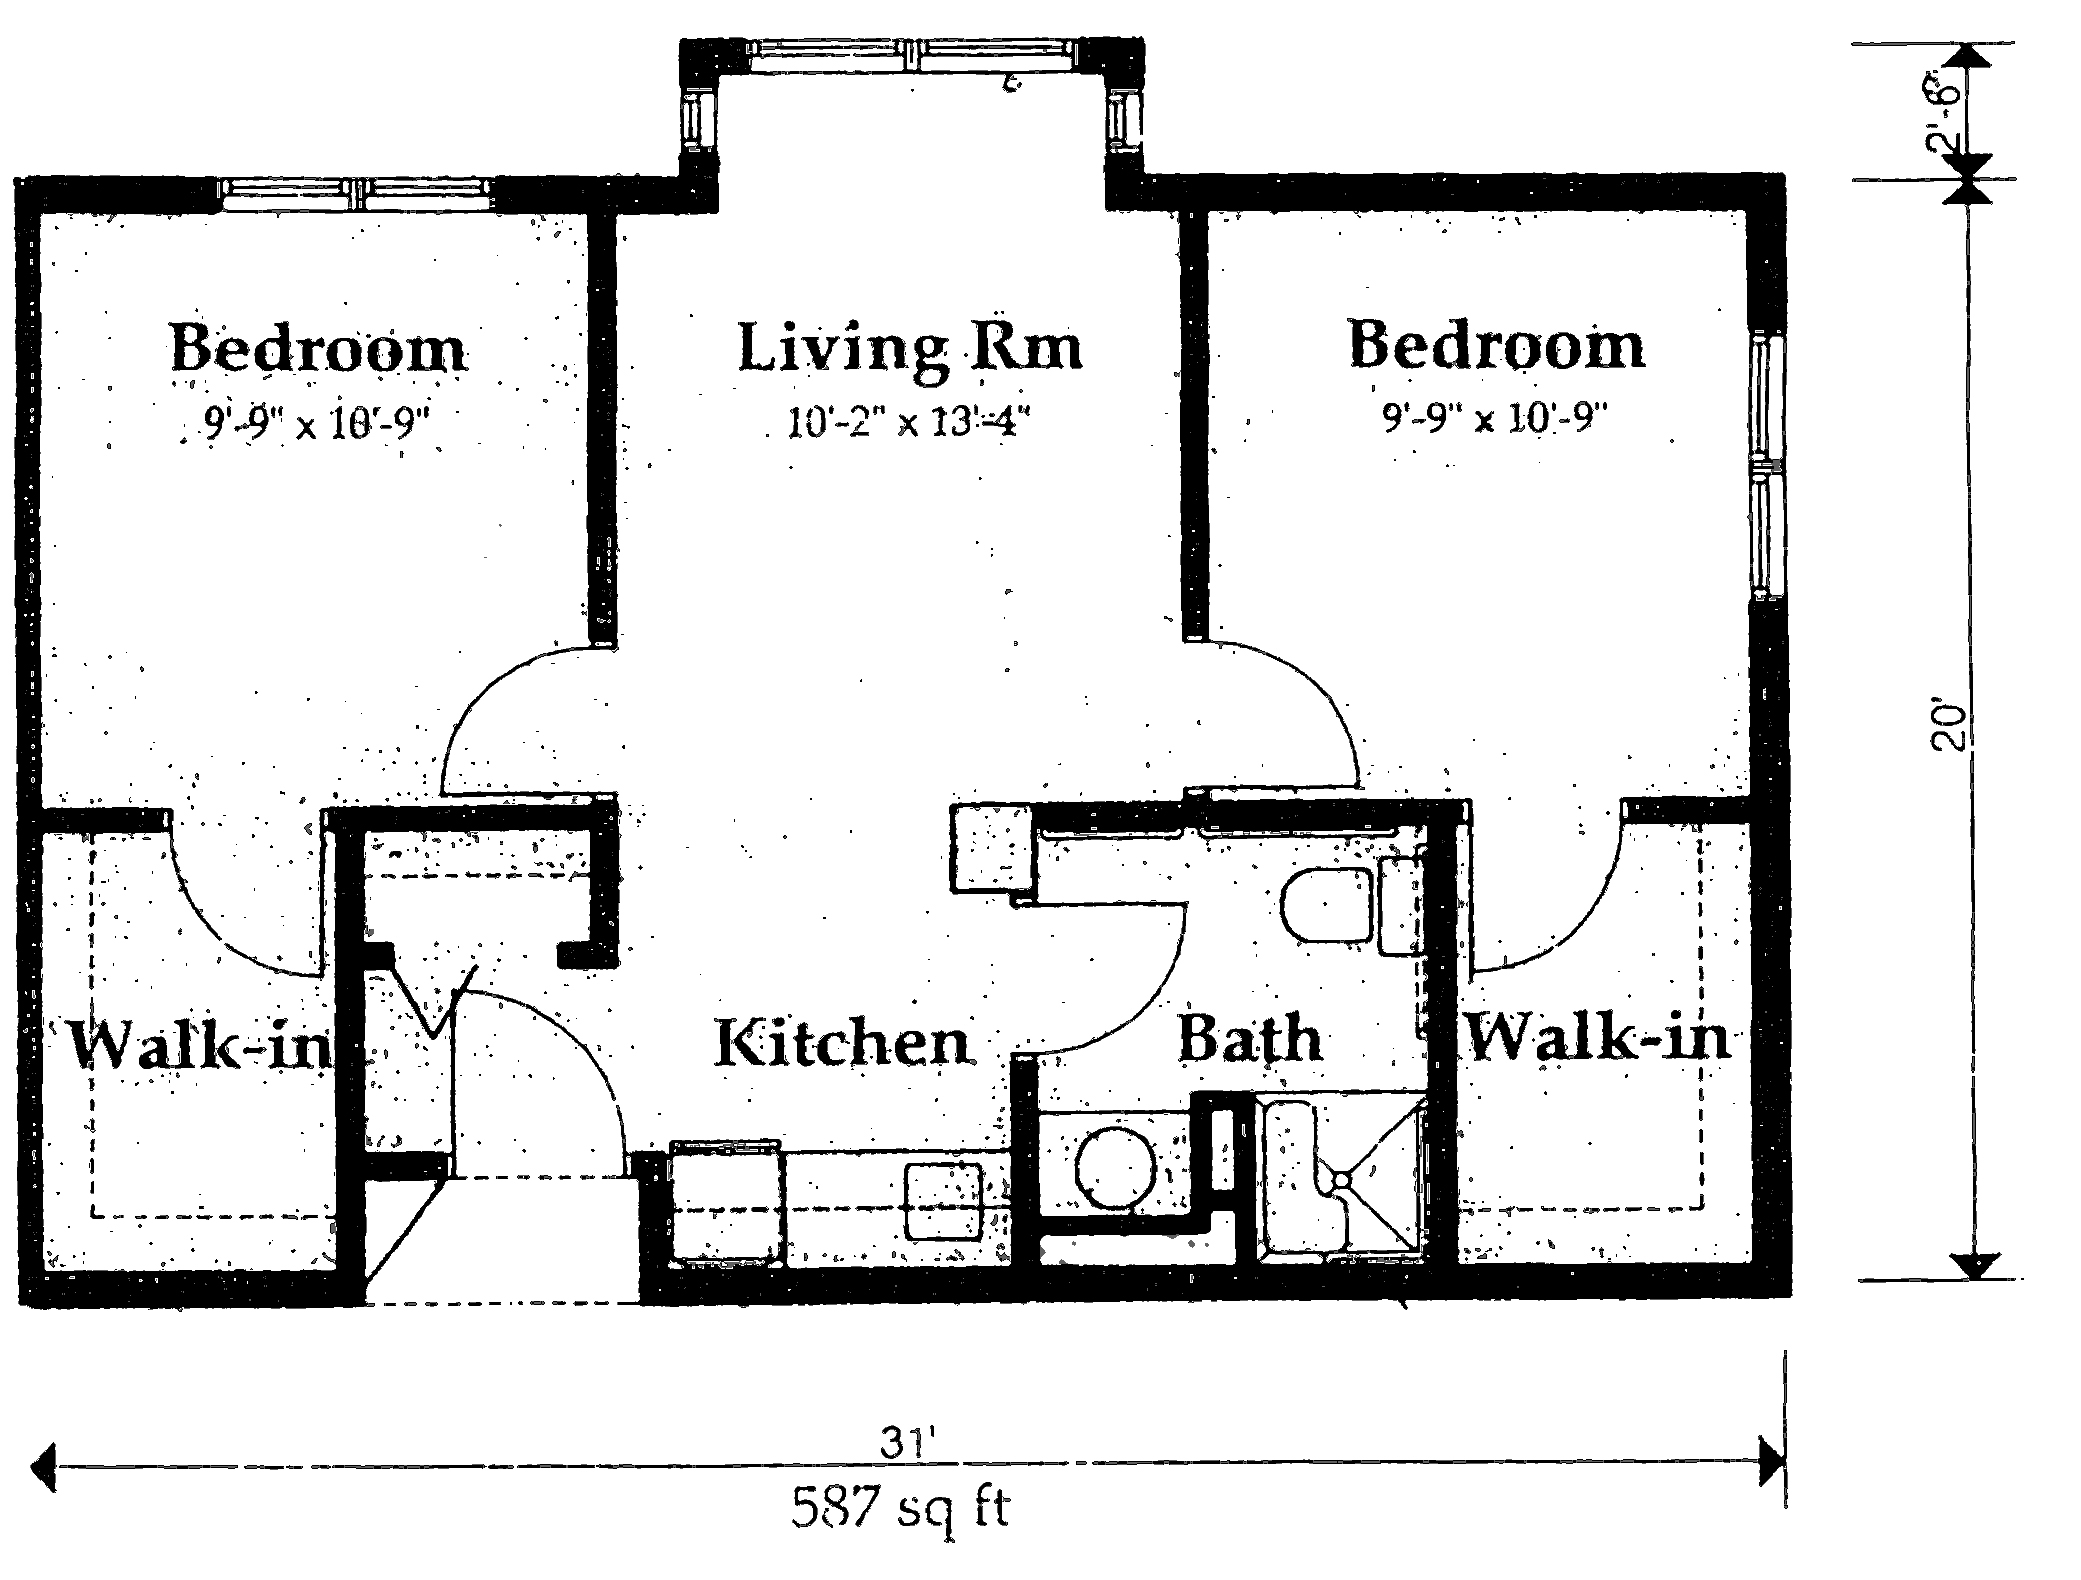 assisted living room layout 3